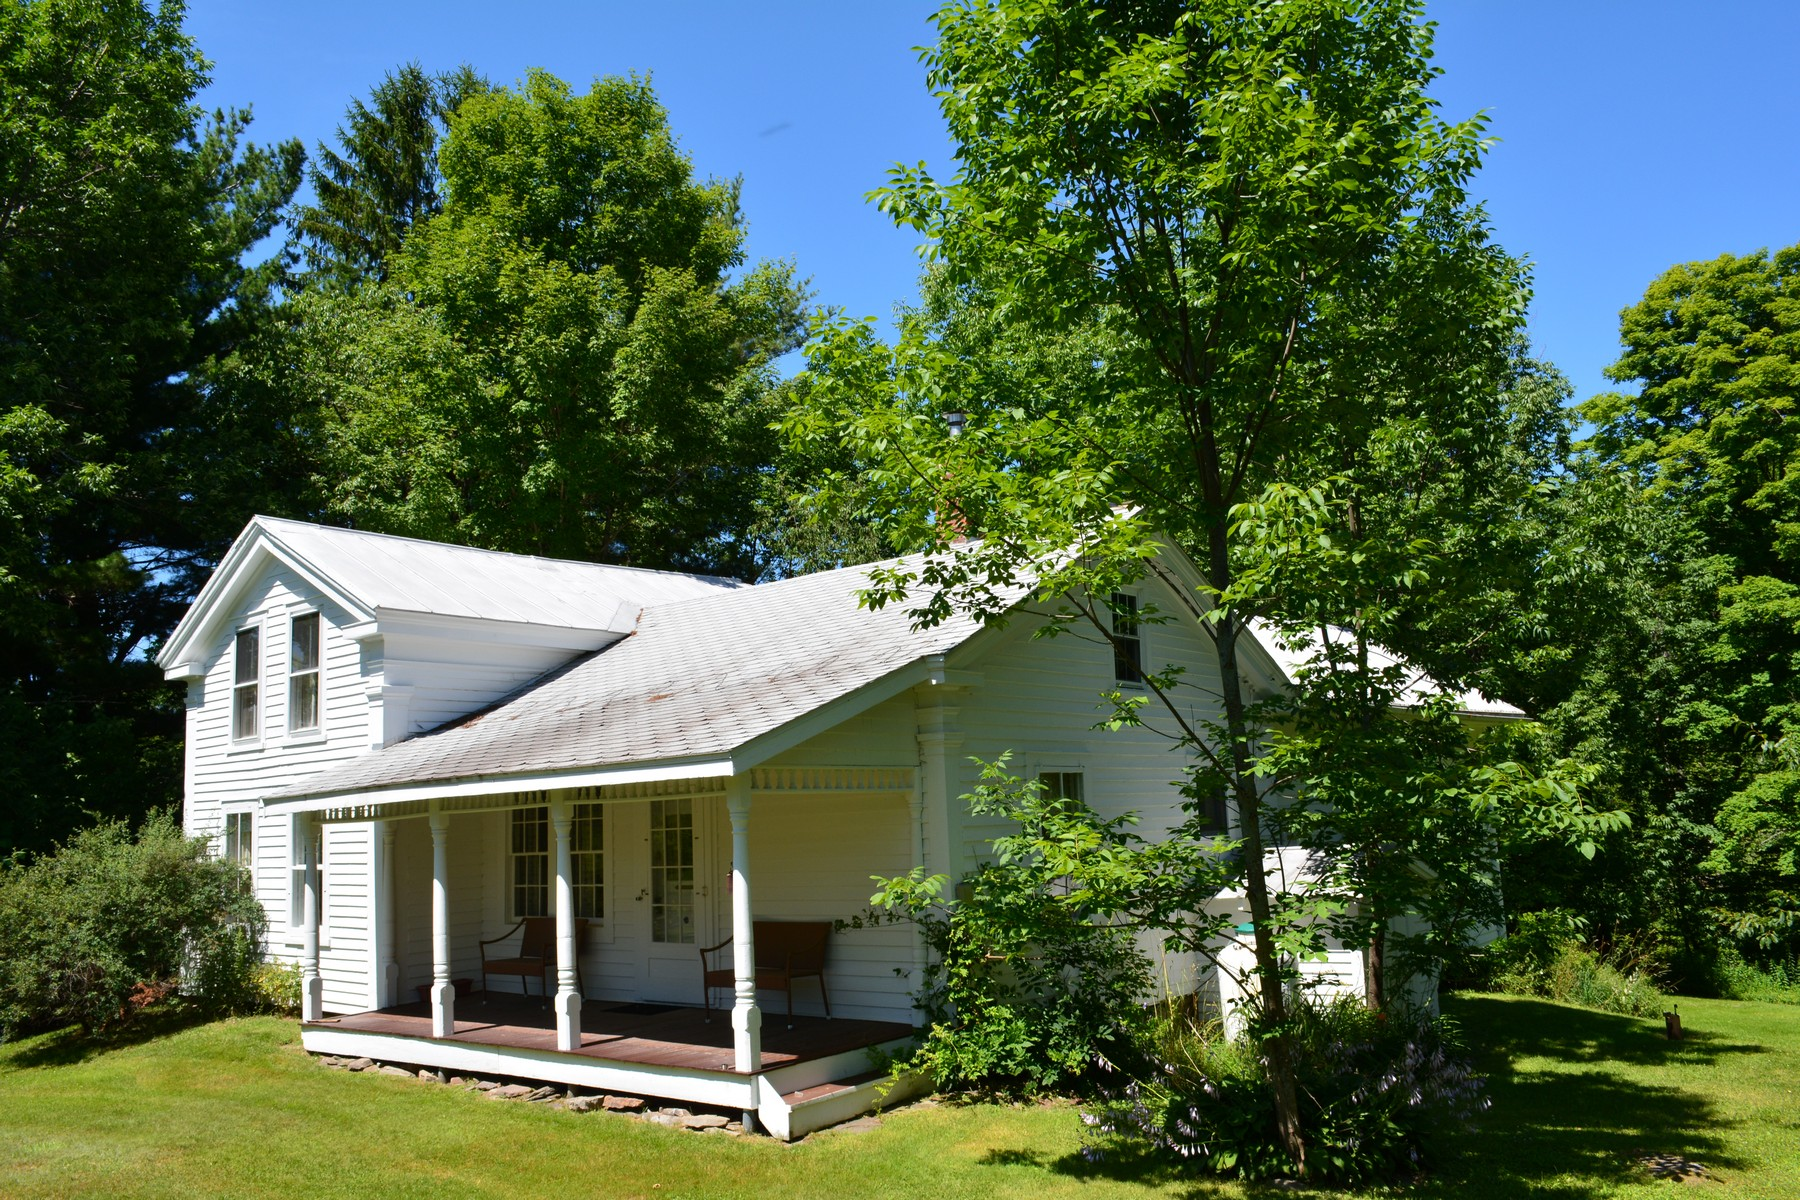 Additional photo for property listing at Classic Farmhouse with Land 6774  Cr23walton-sidney Rd Sidney Center, Nueva York 13839 Estados Unidos